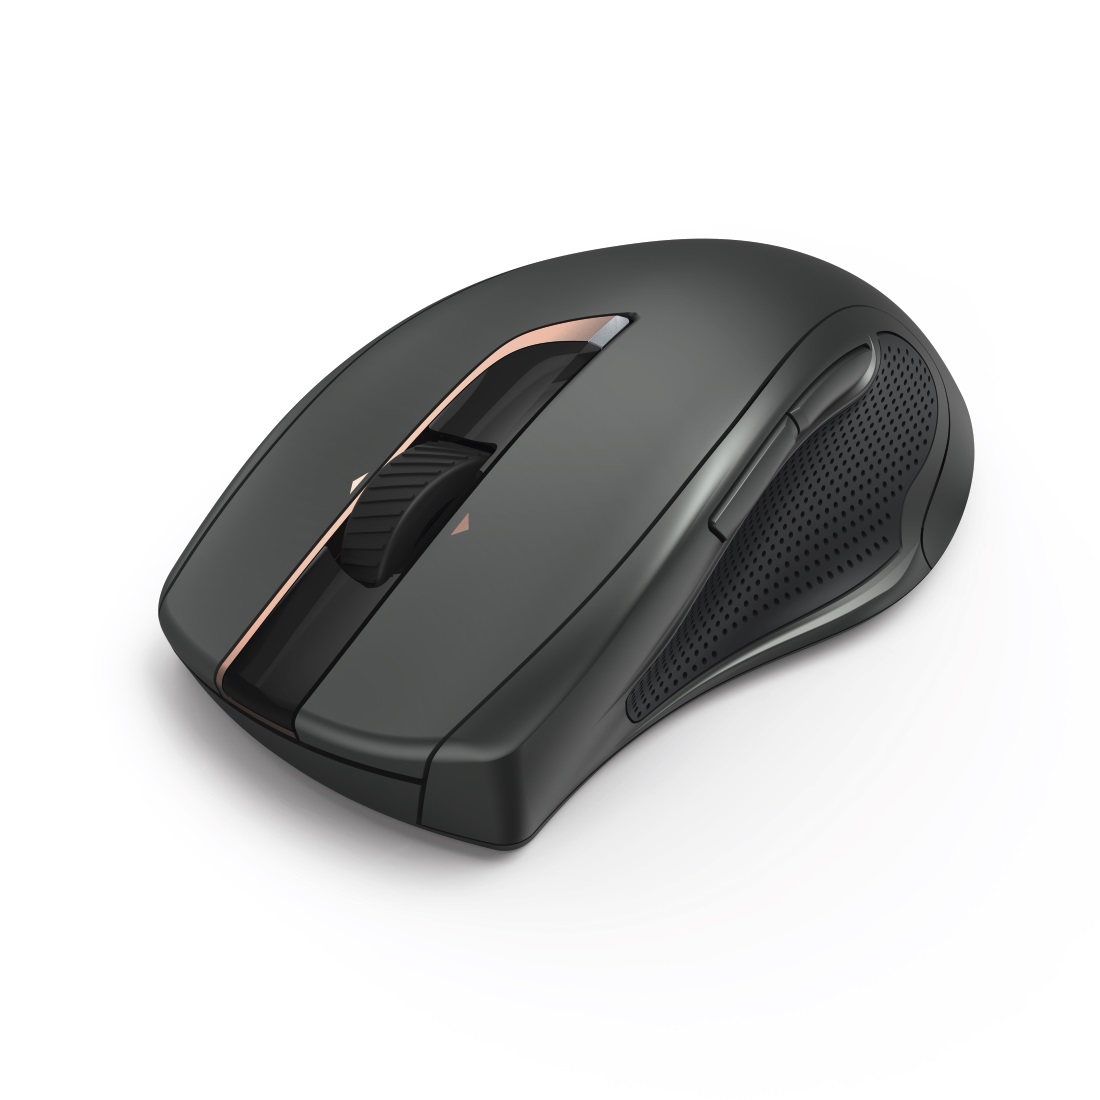 HAMA MW-900 7-Button Laser Wireless Mouse Auto-dpi black